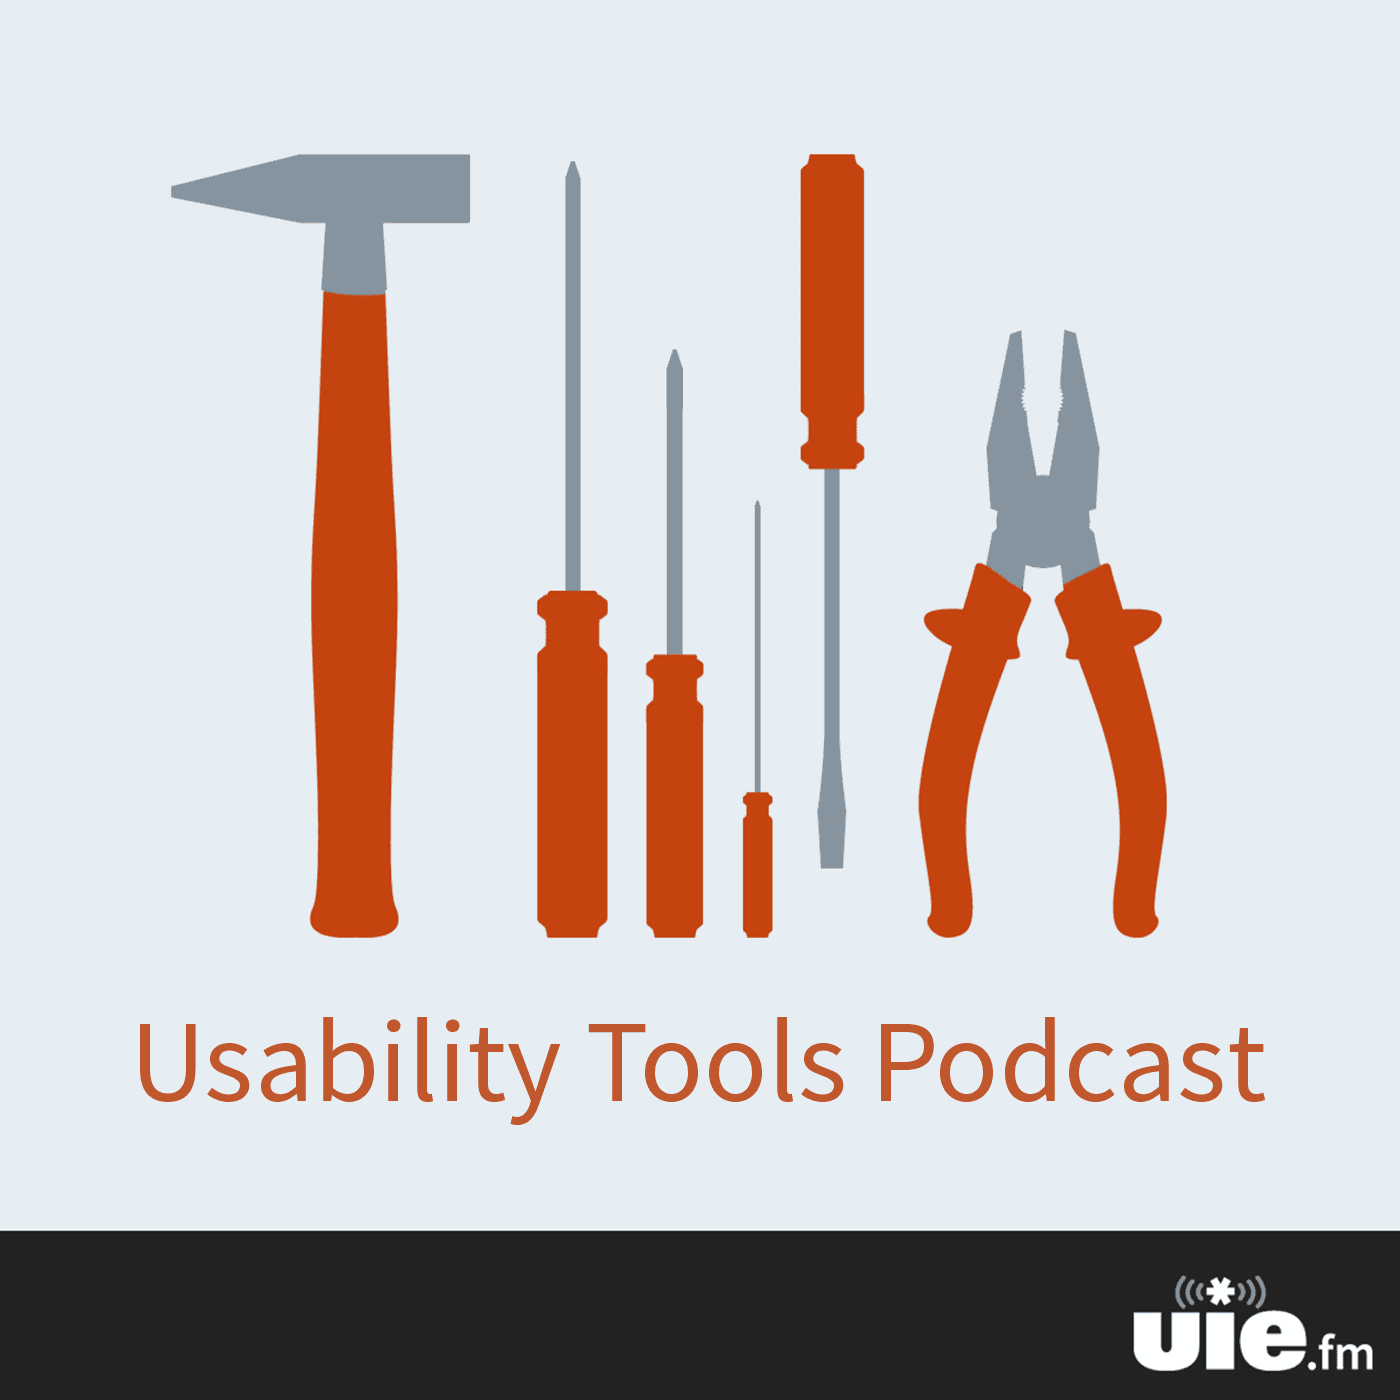 Album art of Usability Tools Podcast